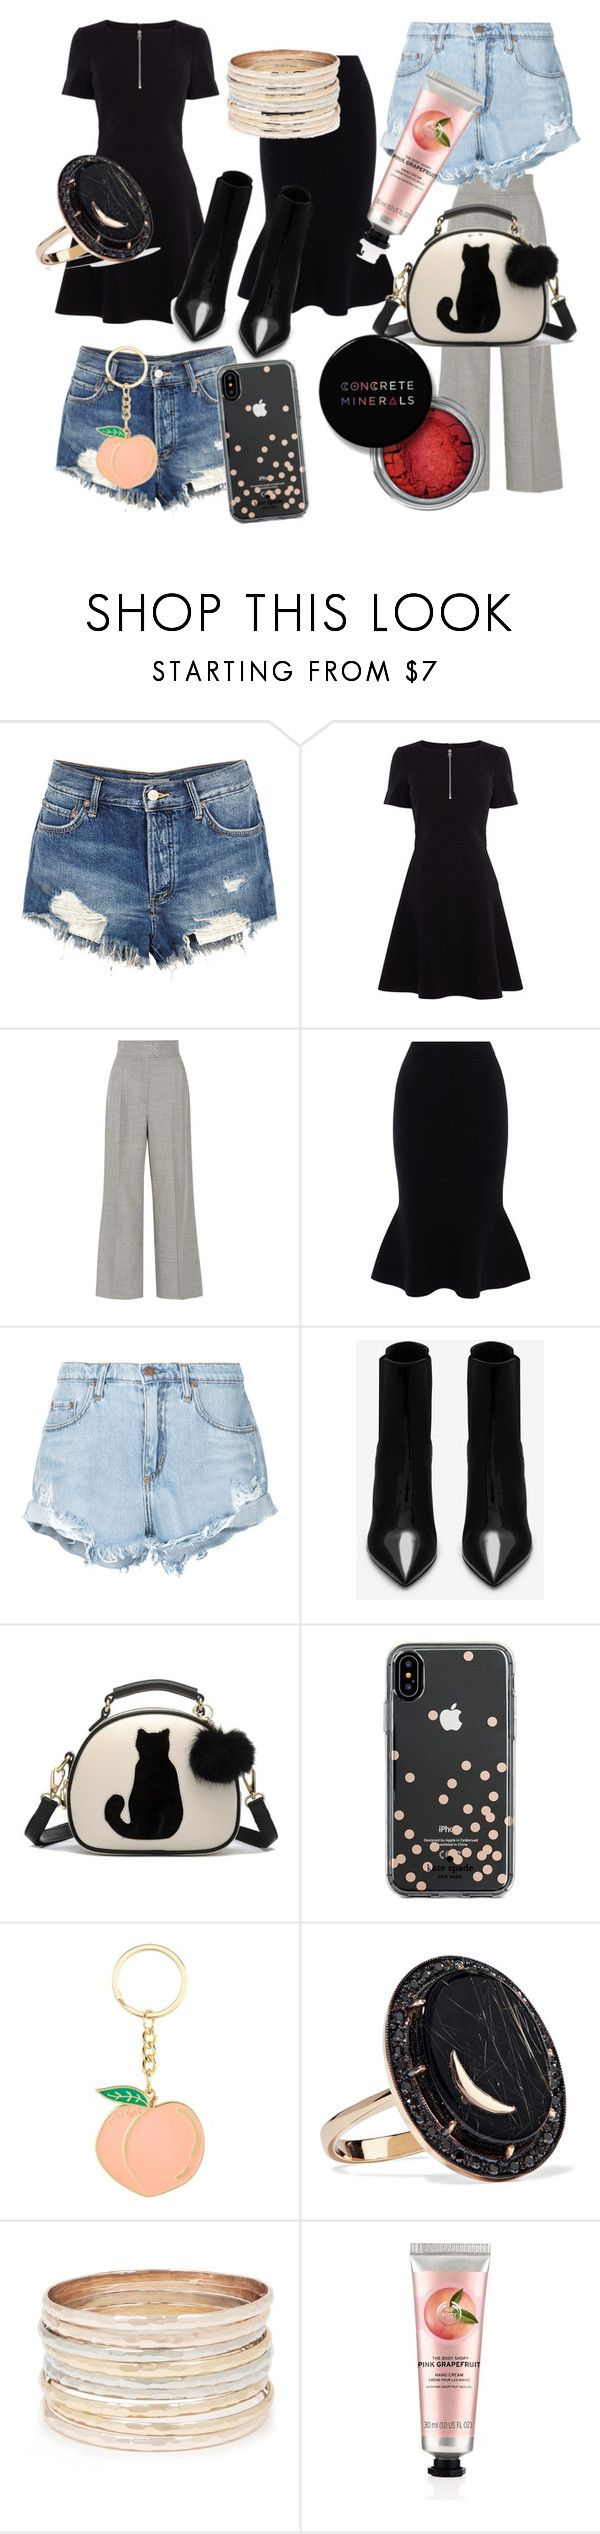 """easy"" by veriveri ❤ liked on Polyvore featuring Free People, Karen Millen, Casasola, Nobody Denim, Yves Saint Laurent, Kate Spade, Andrea Fohrman, The Body Shop and Concrete Minerals"